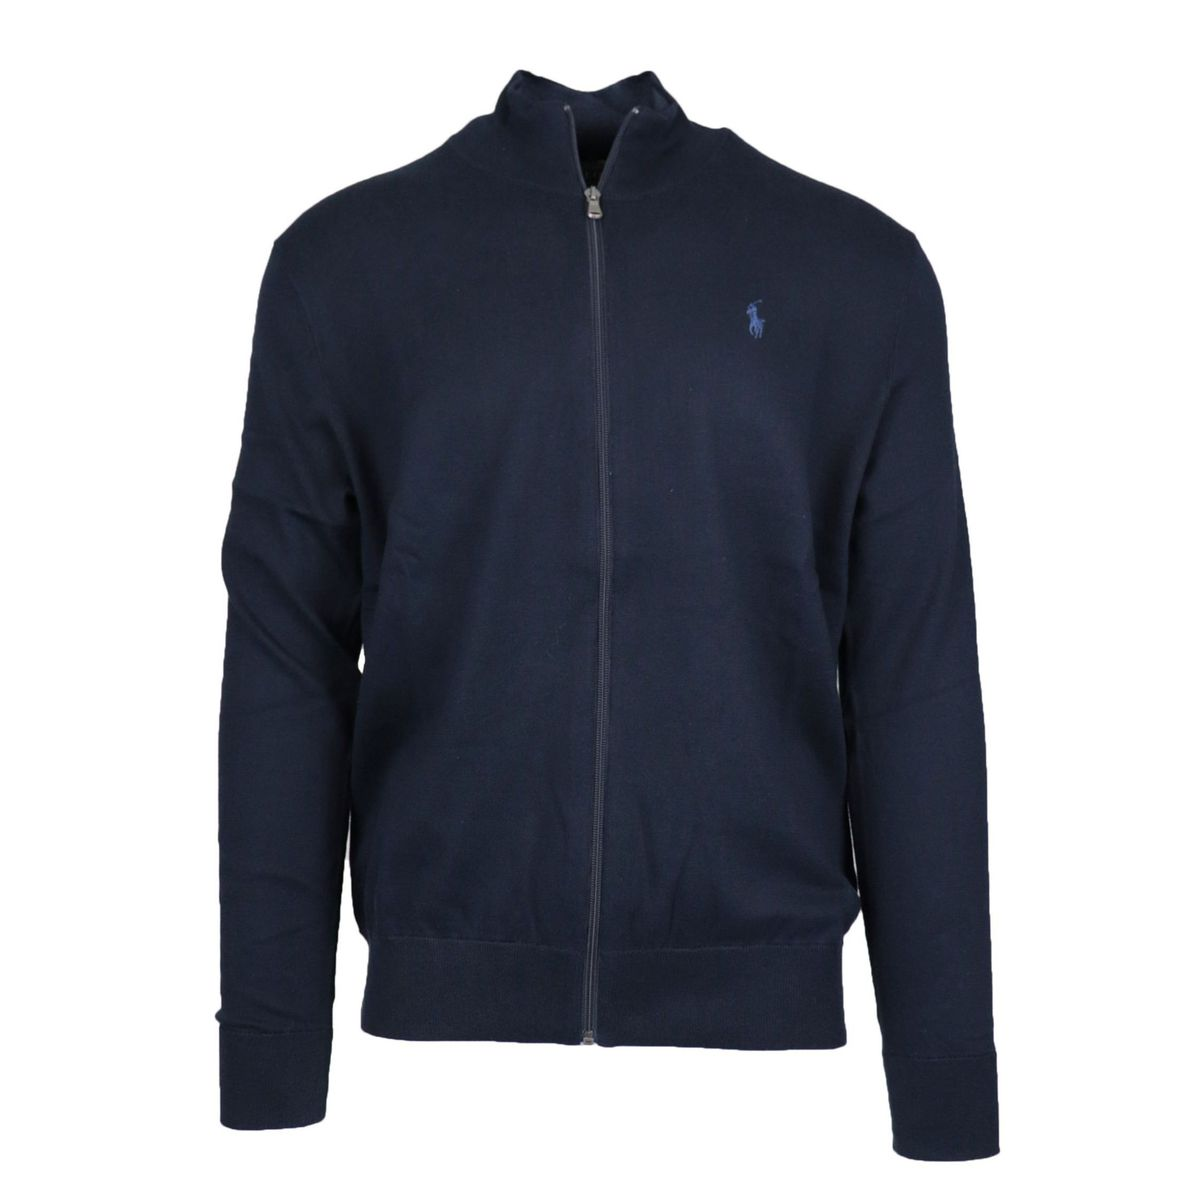 Full zip cotton sweater with stand up collar Navy Polo Ralph Lauren